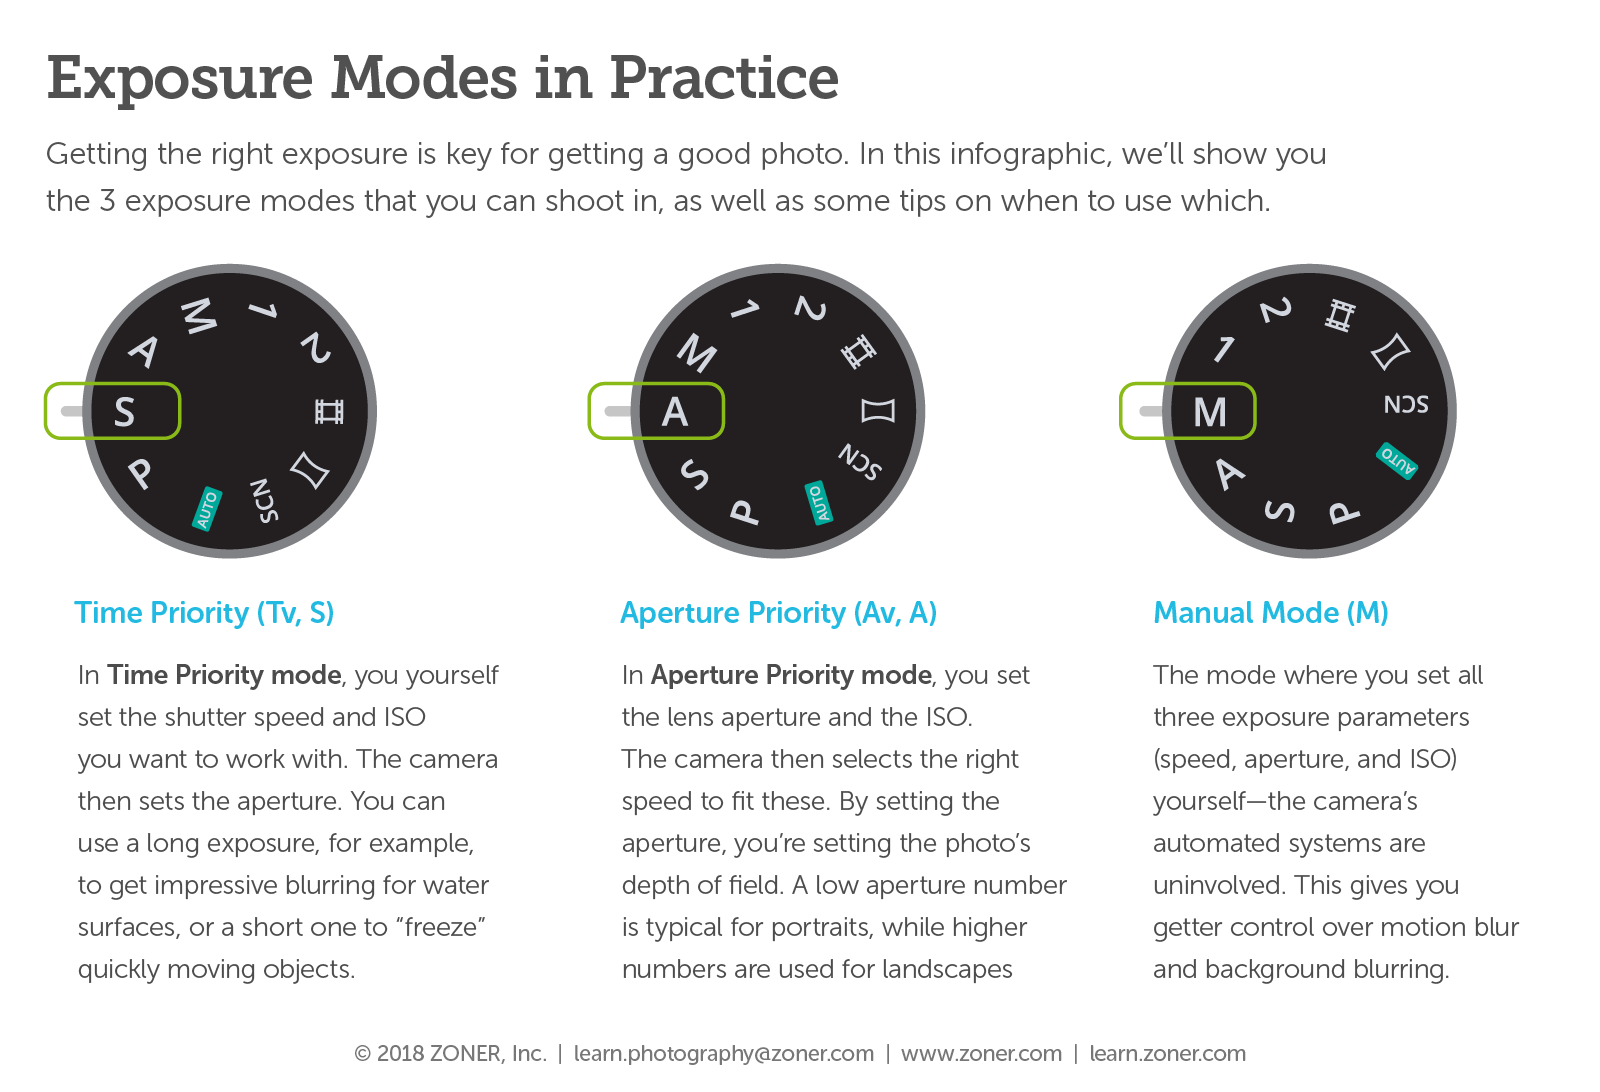 Infographic] Exposure Modes in Practice | Learn Photography